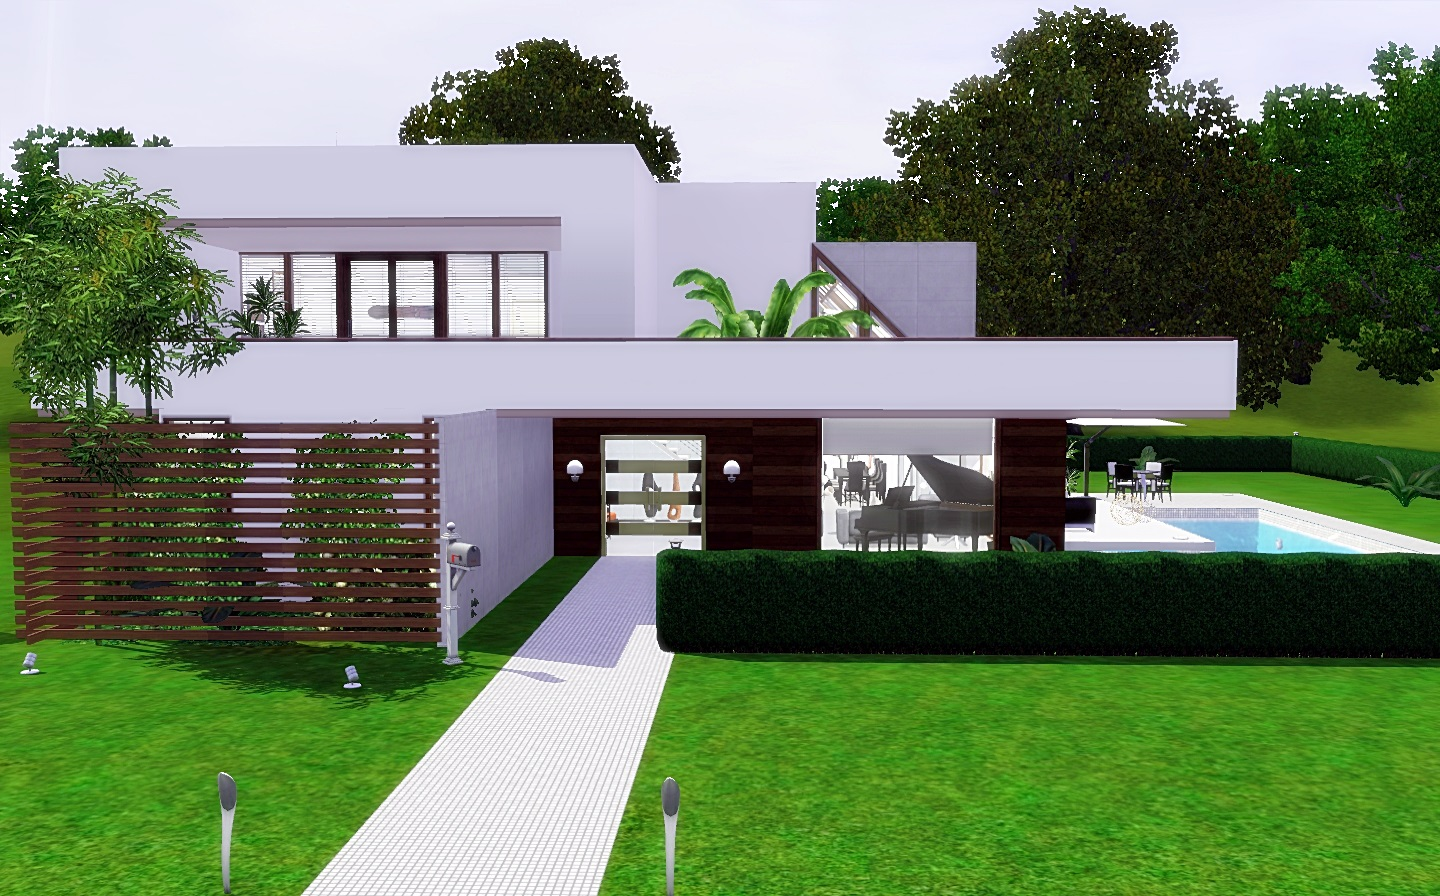 Modern Cozy - House The Sims 3 - Via Sims